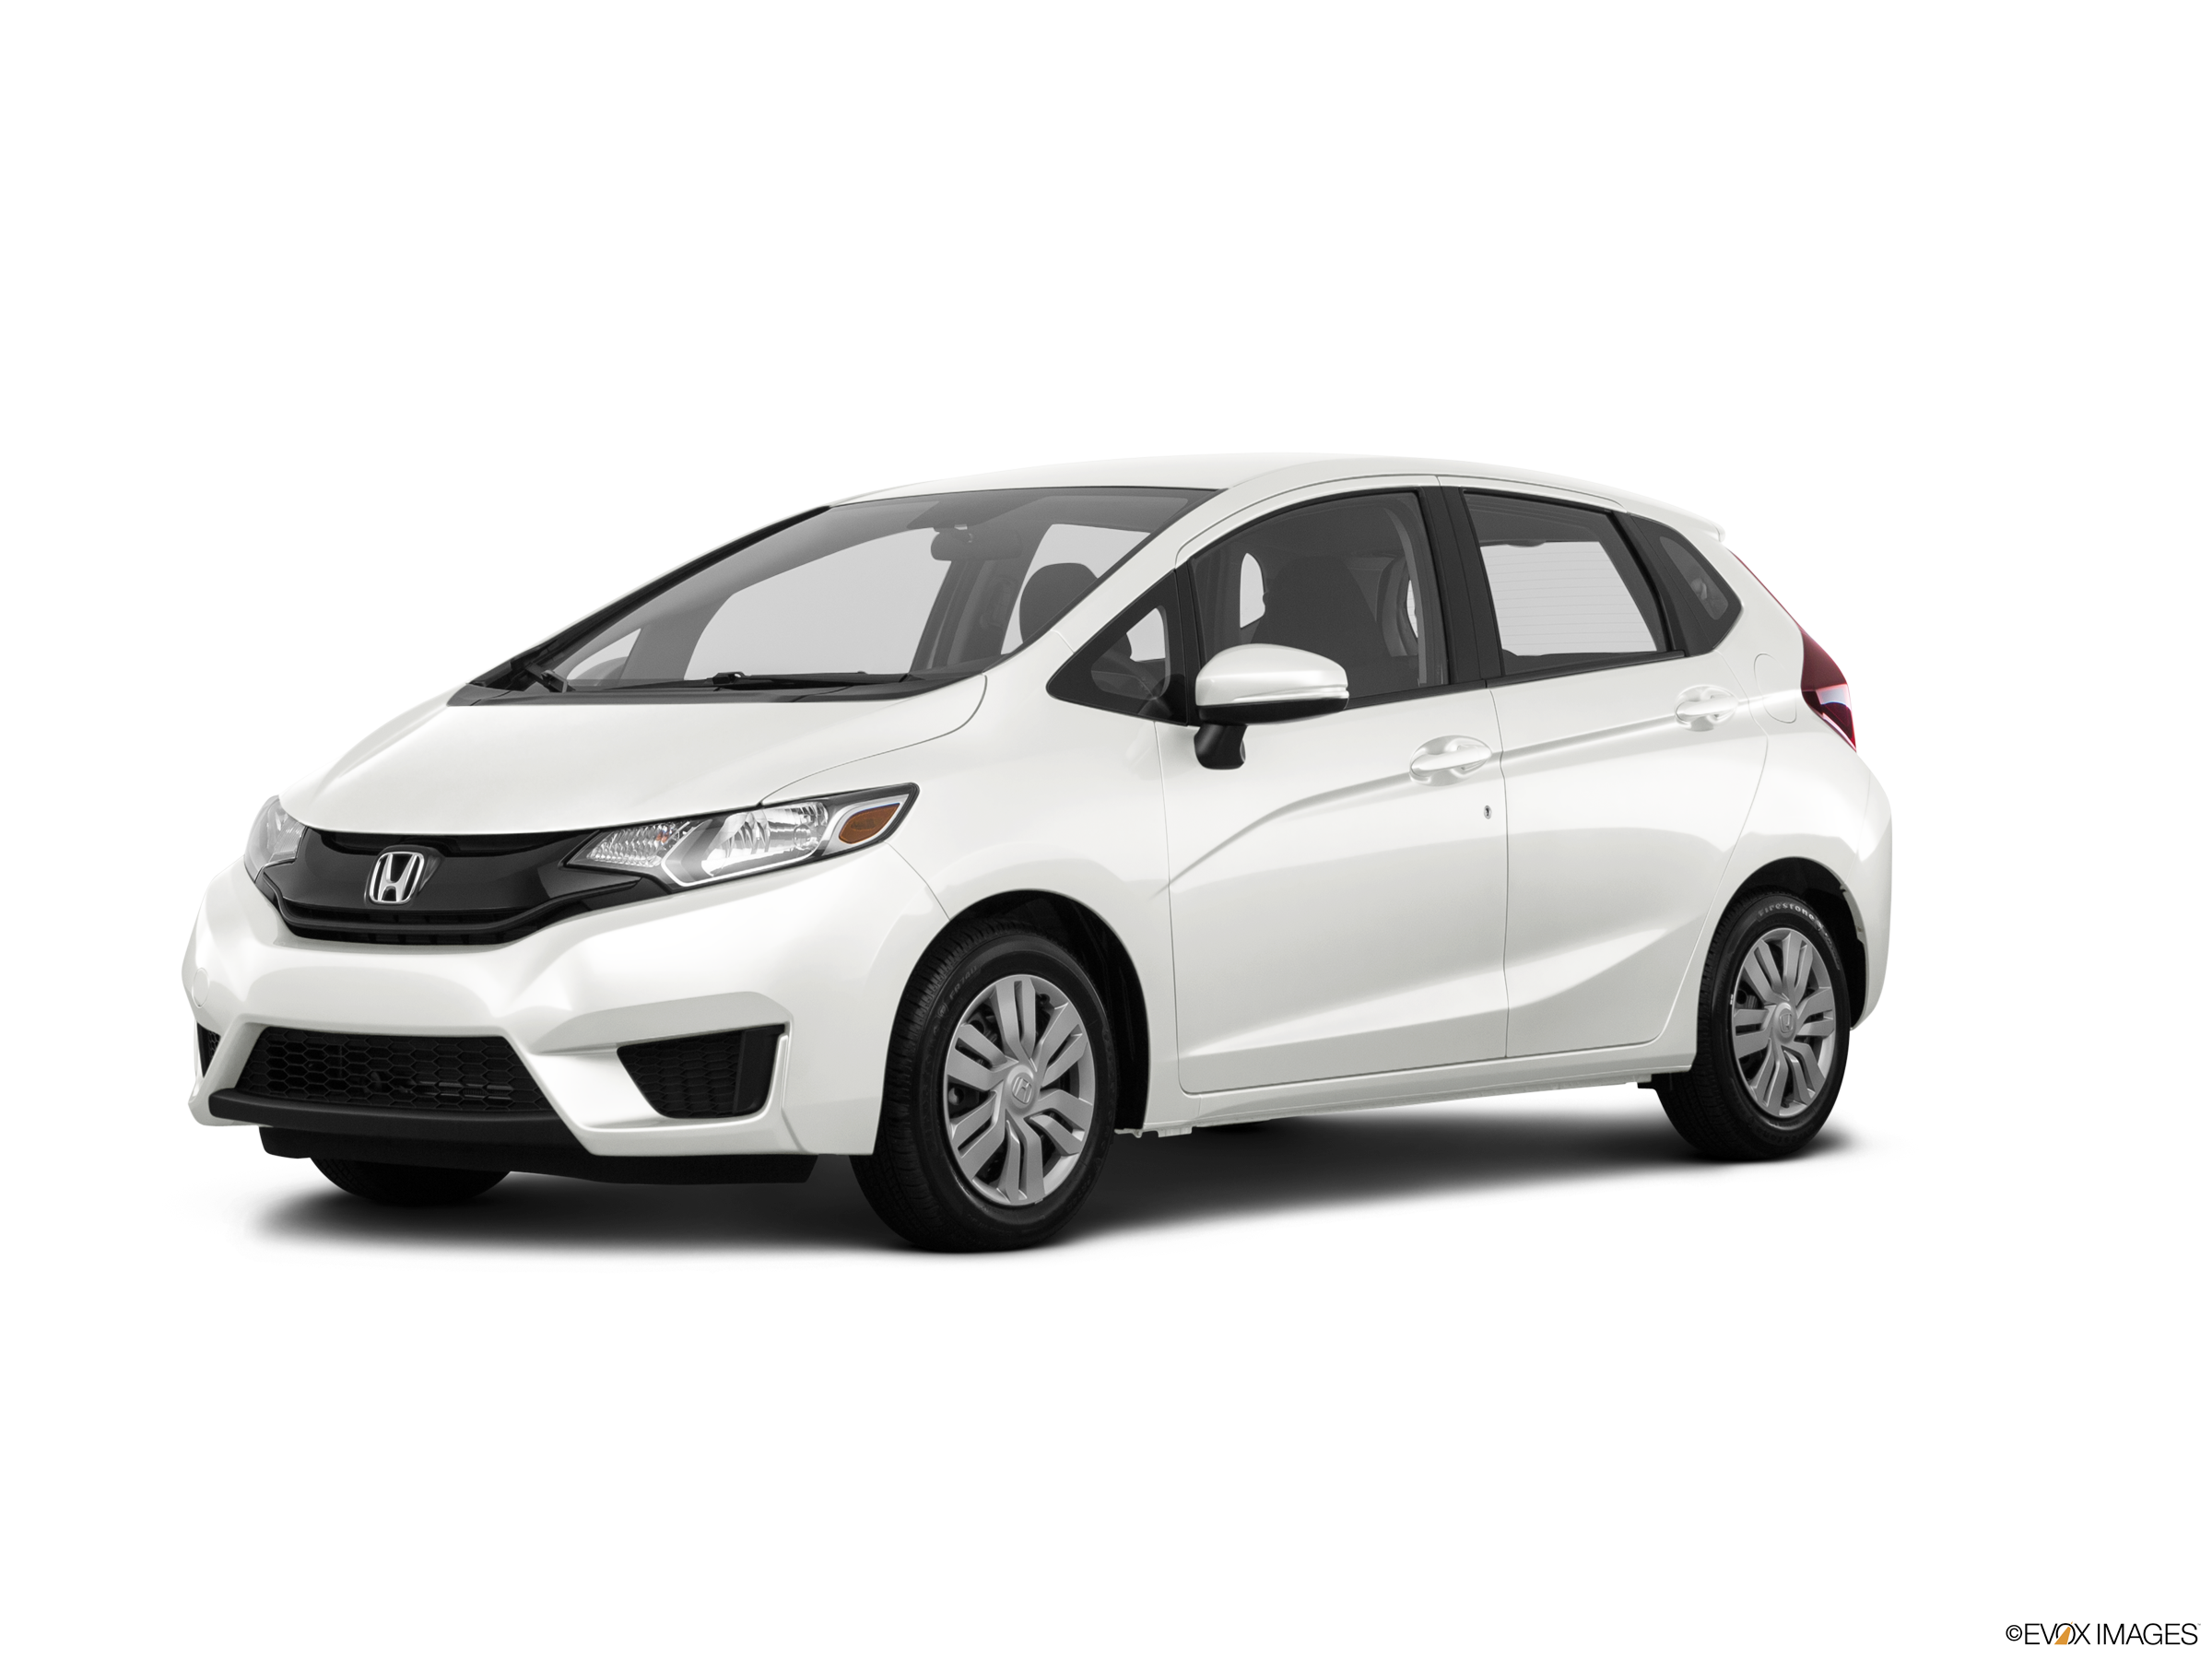 Top Expert Rated Hatchbacks of 2017 - 2017 Honda Fit